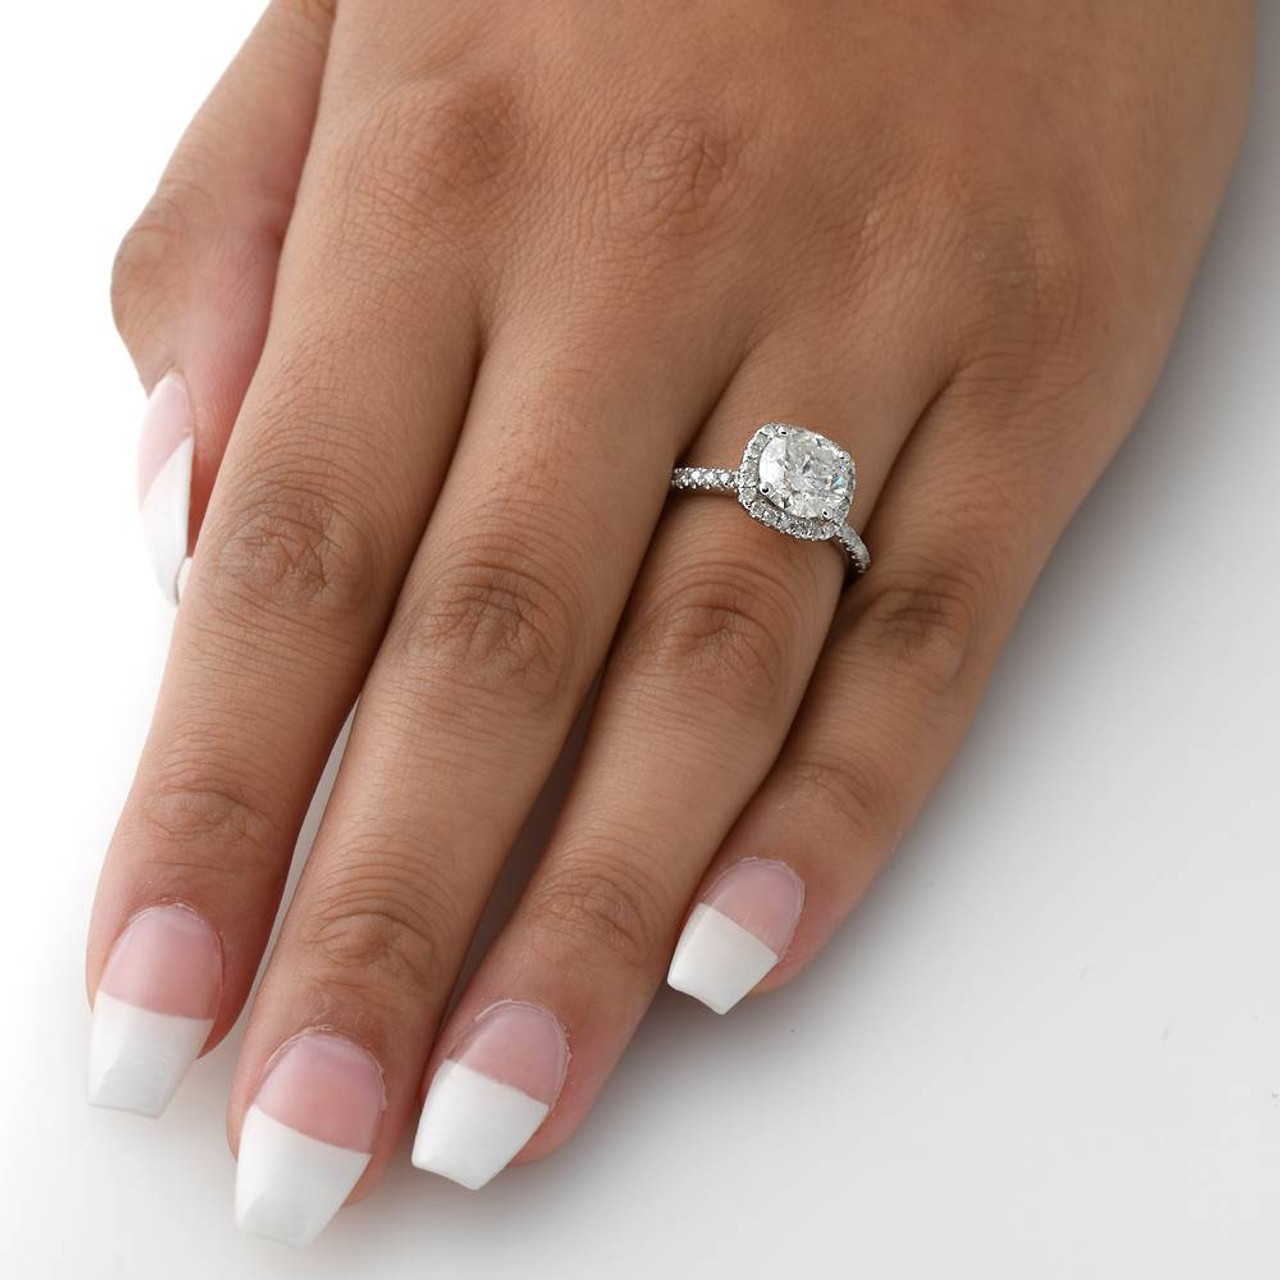 Fullsize Of 2 Carat Diamond Ring